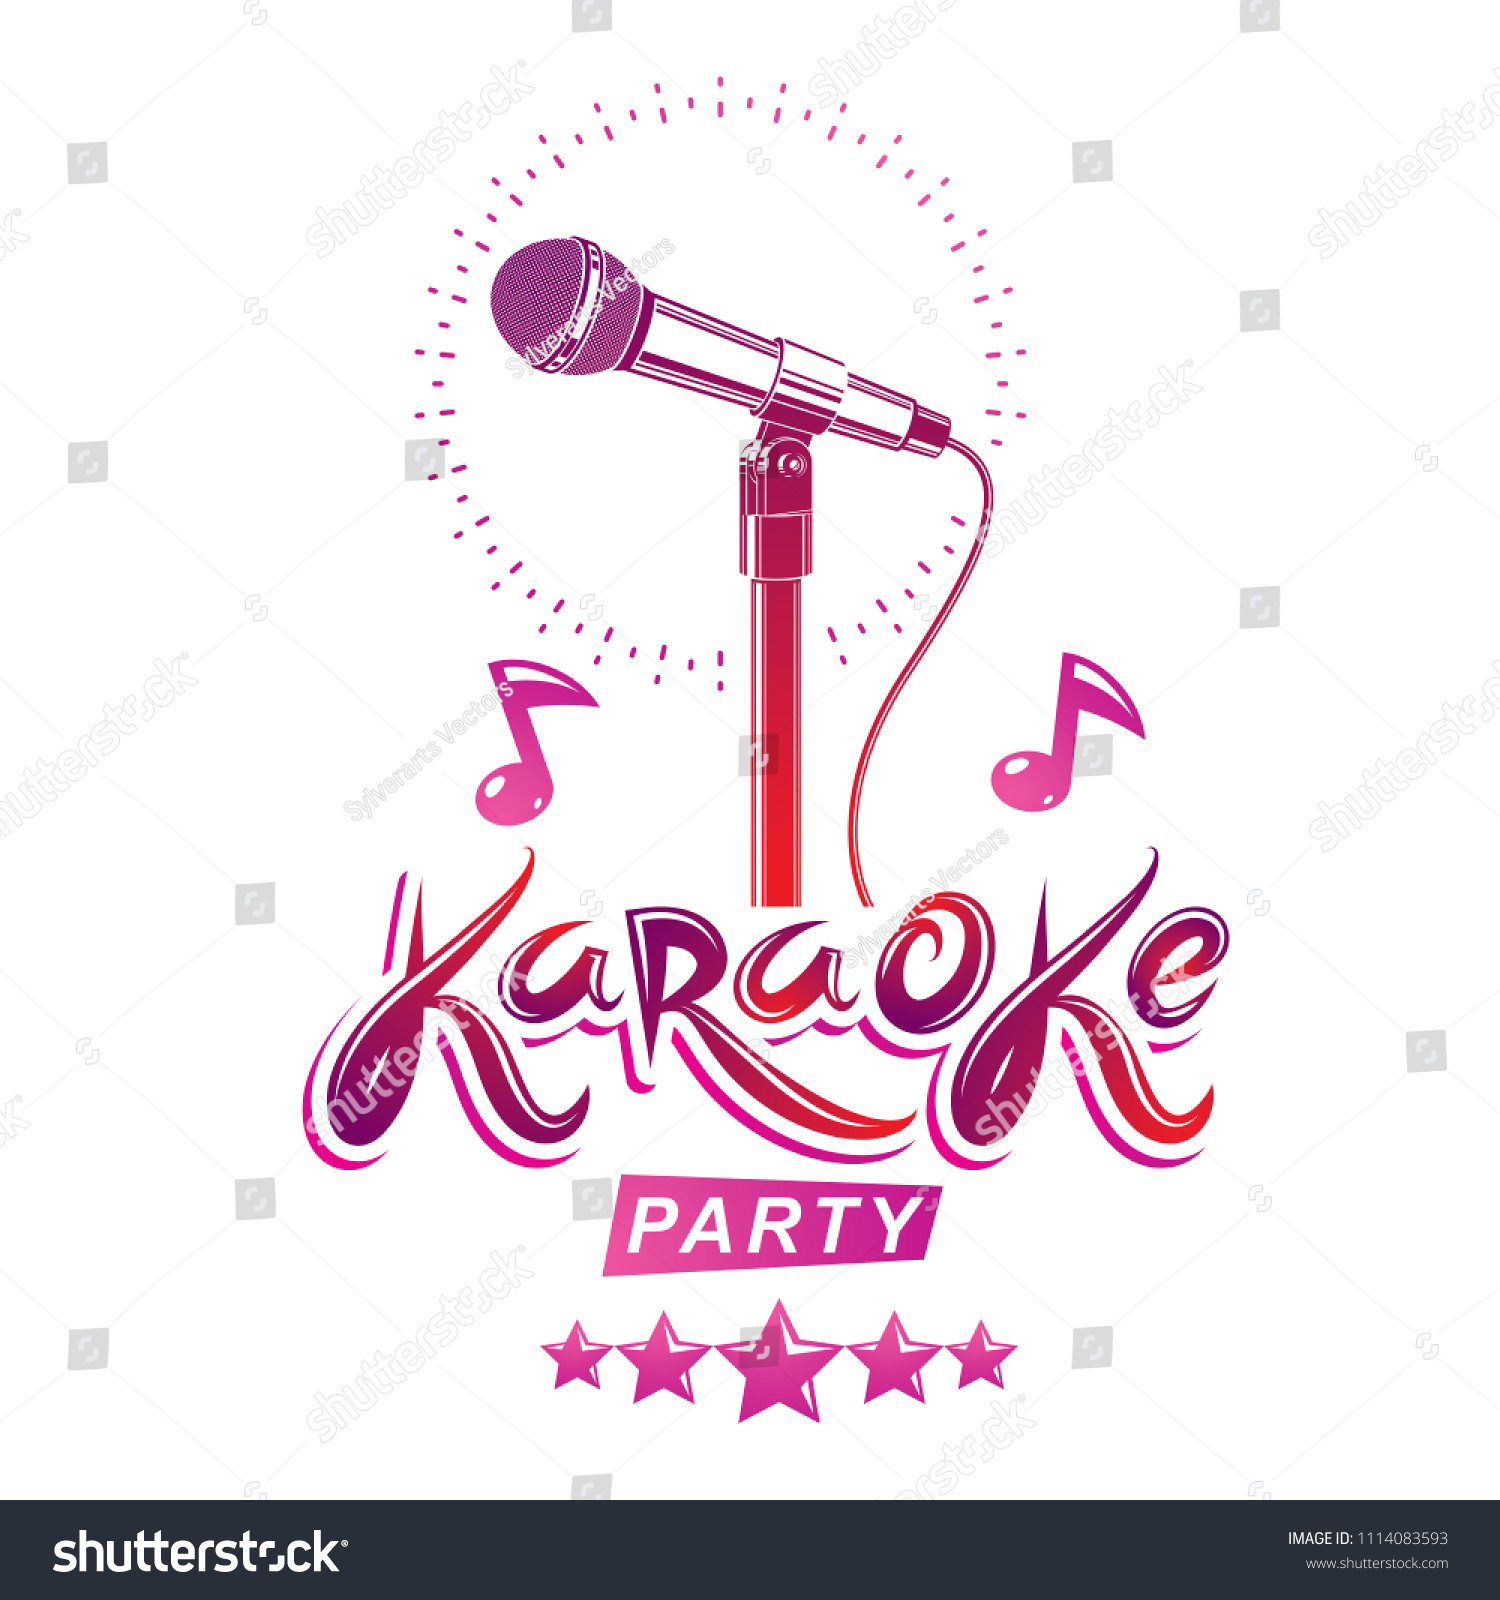 Karaoke Party Invitation Poster Live Music Stock Illustration ...